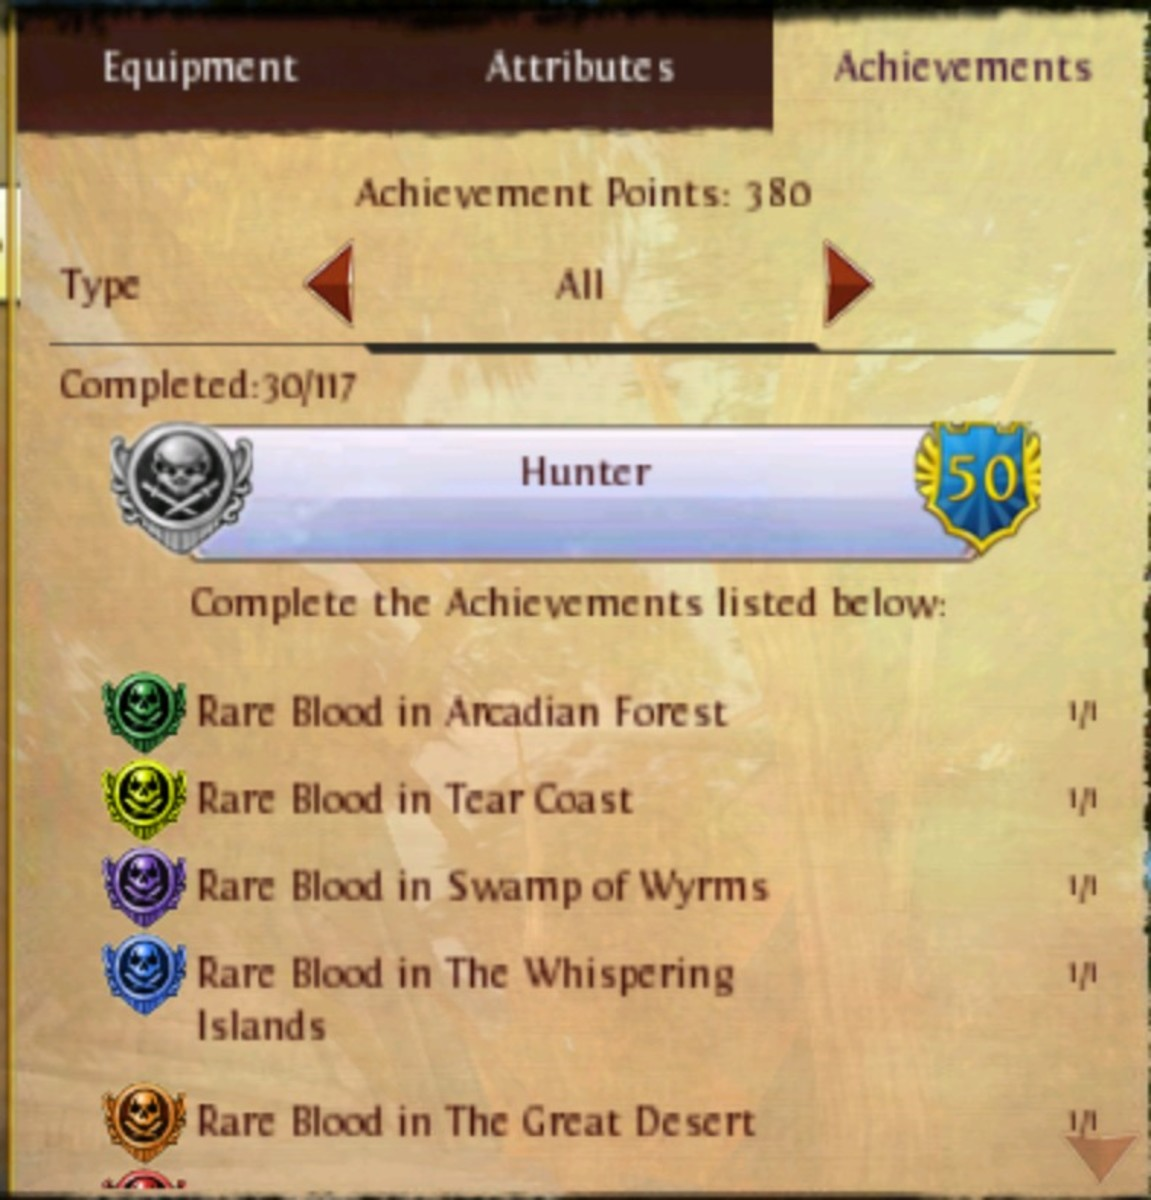 This is a part of the Hunter achievement list. There is more, this is just an example for Rare Blood.